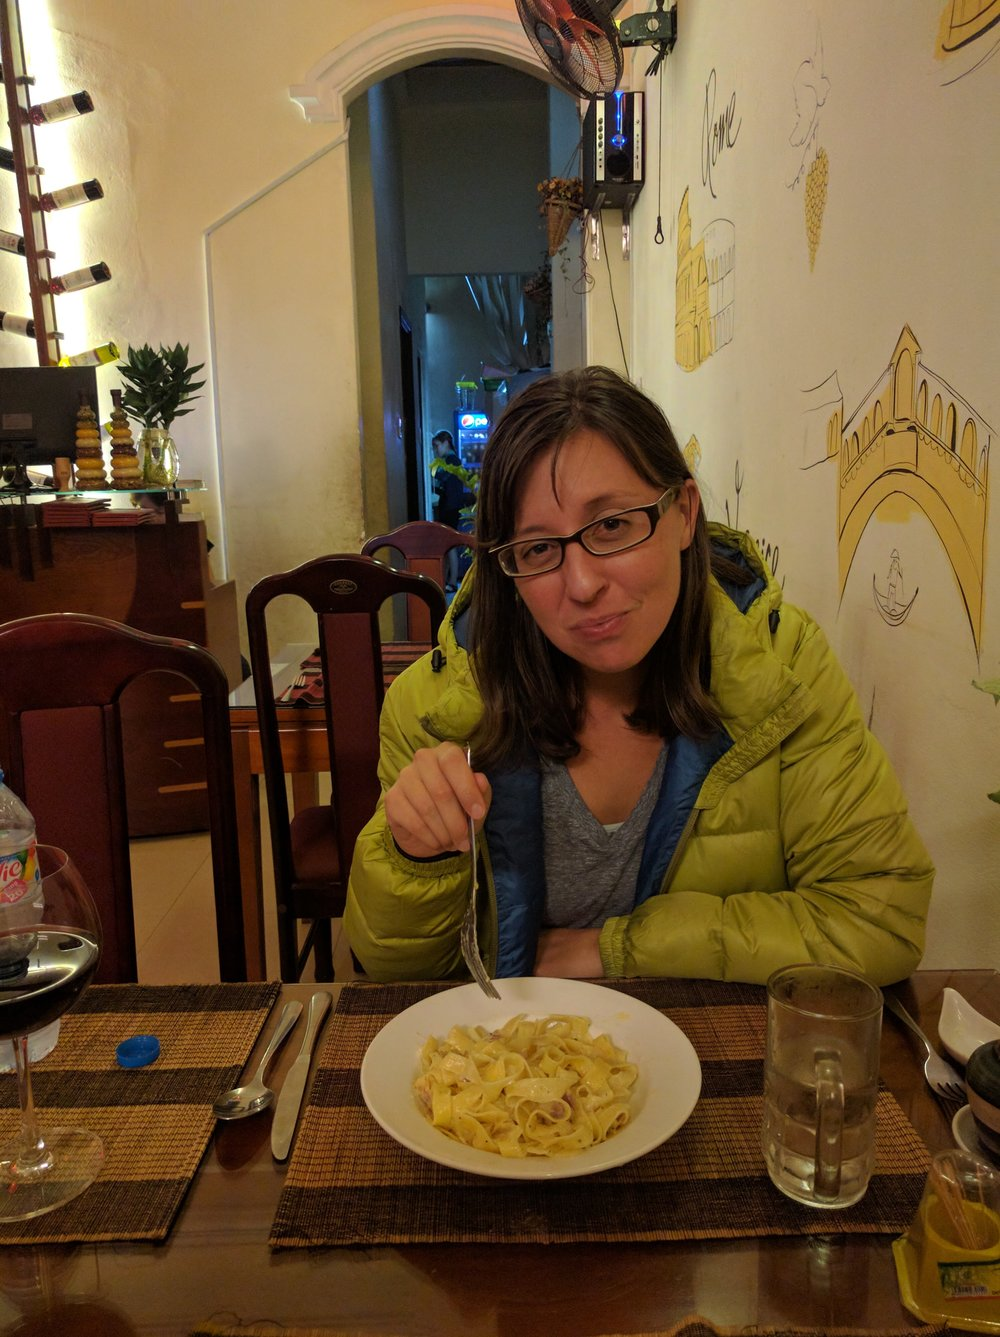 Comfort carbs after the leech episode. Best carbonara we've had in Asia and just two doors down from the hotel where Hung put us up.